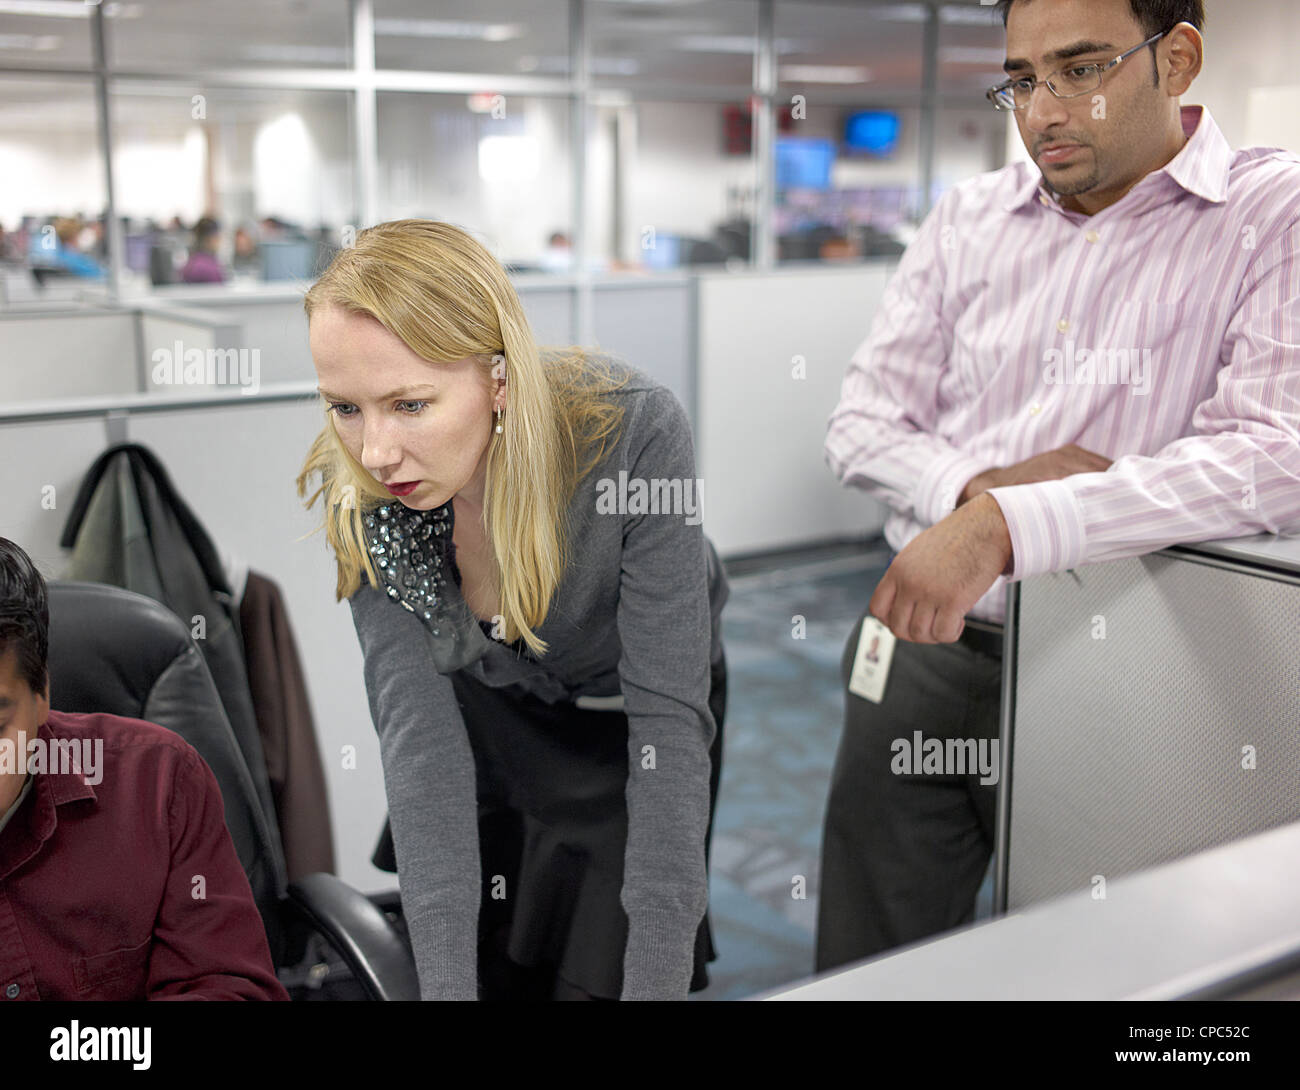 Two workers looking over the shoulder of their coworkers in a cubicle. - Stock Image